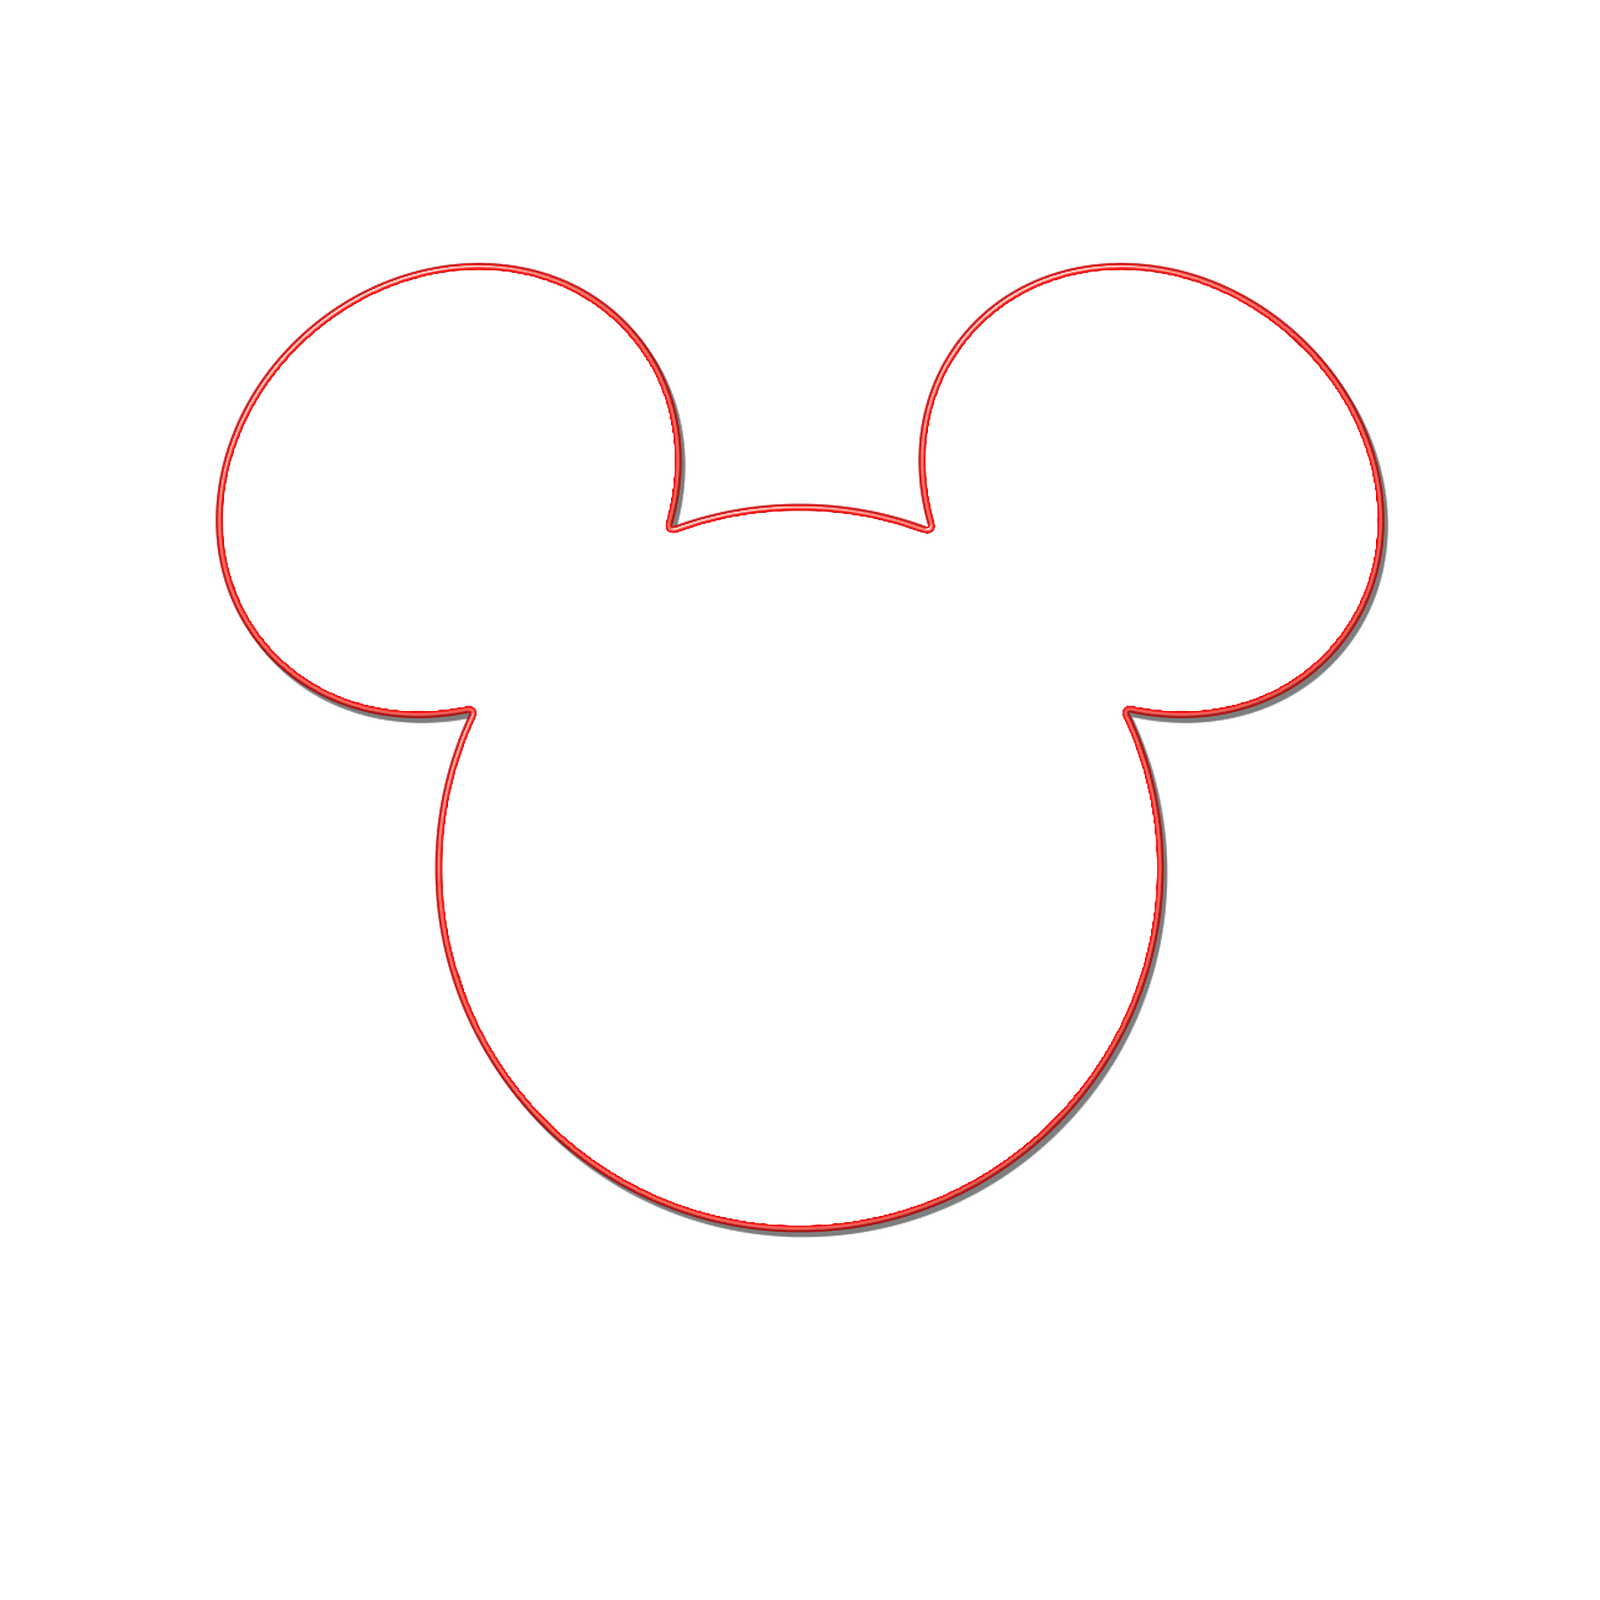 Shadow clipart mickey mouse #2